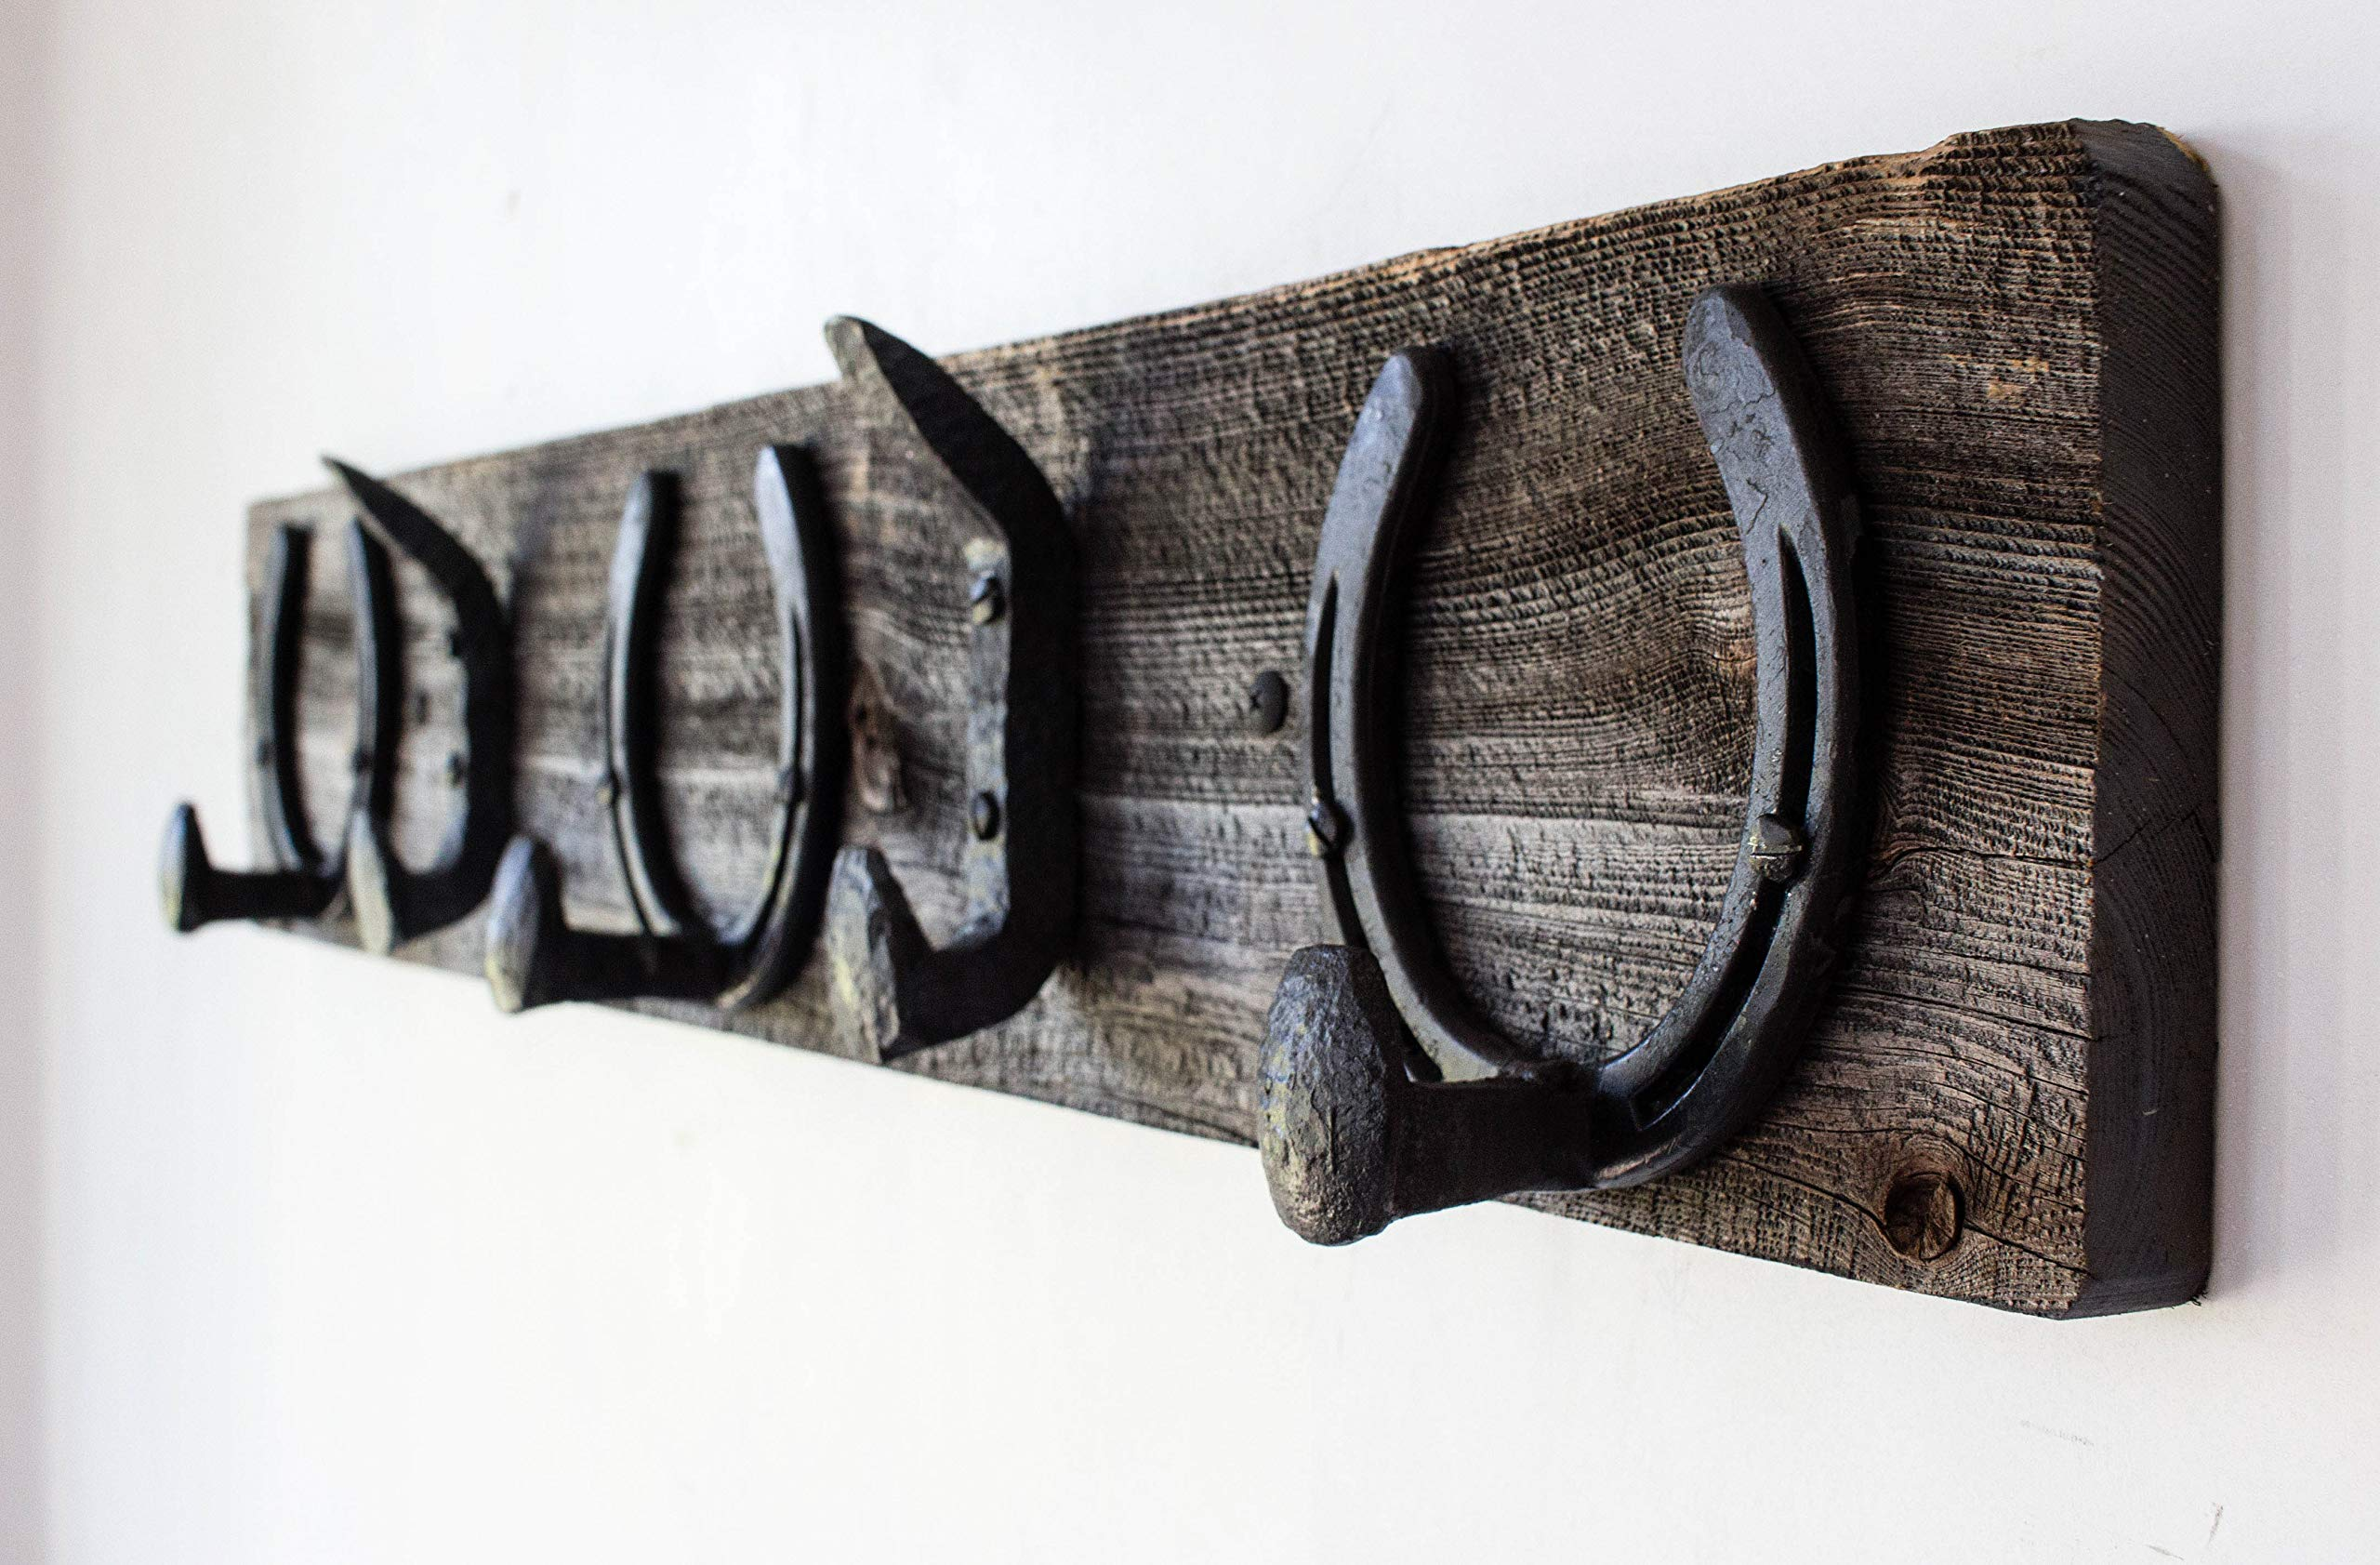 Vintage Rustic Coat Rack –Authentic Barn Wood Hanger Rack for Towels, Clothes, Hats, Bags–Antique Door & Wall Mounted 5-Hook Rail (Horseshoe & Railroad Spike Hook - 32'' x 5 ¾ x 7/8'', Gray)